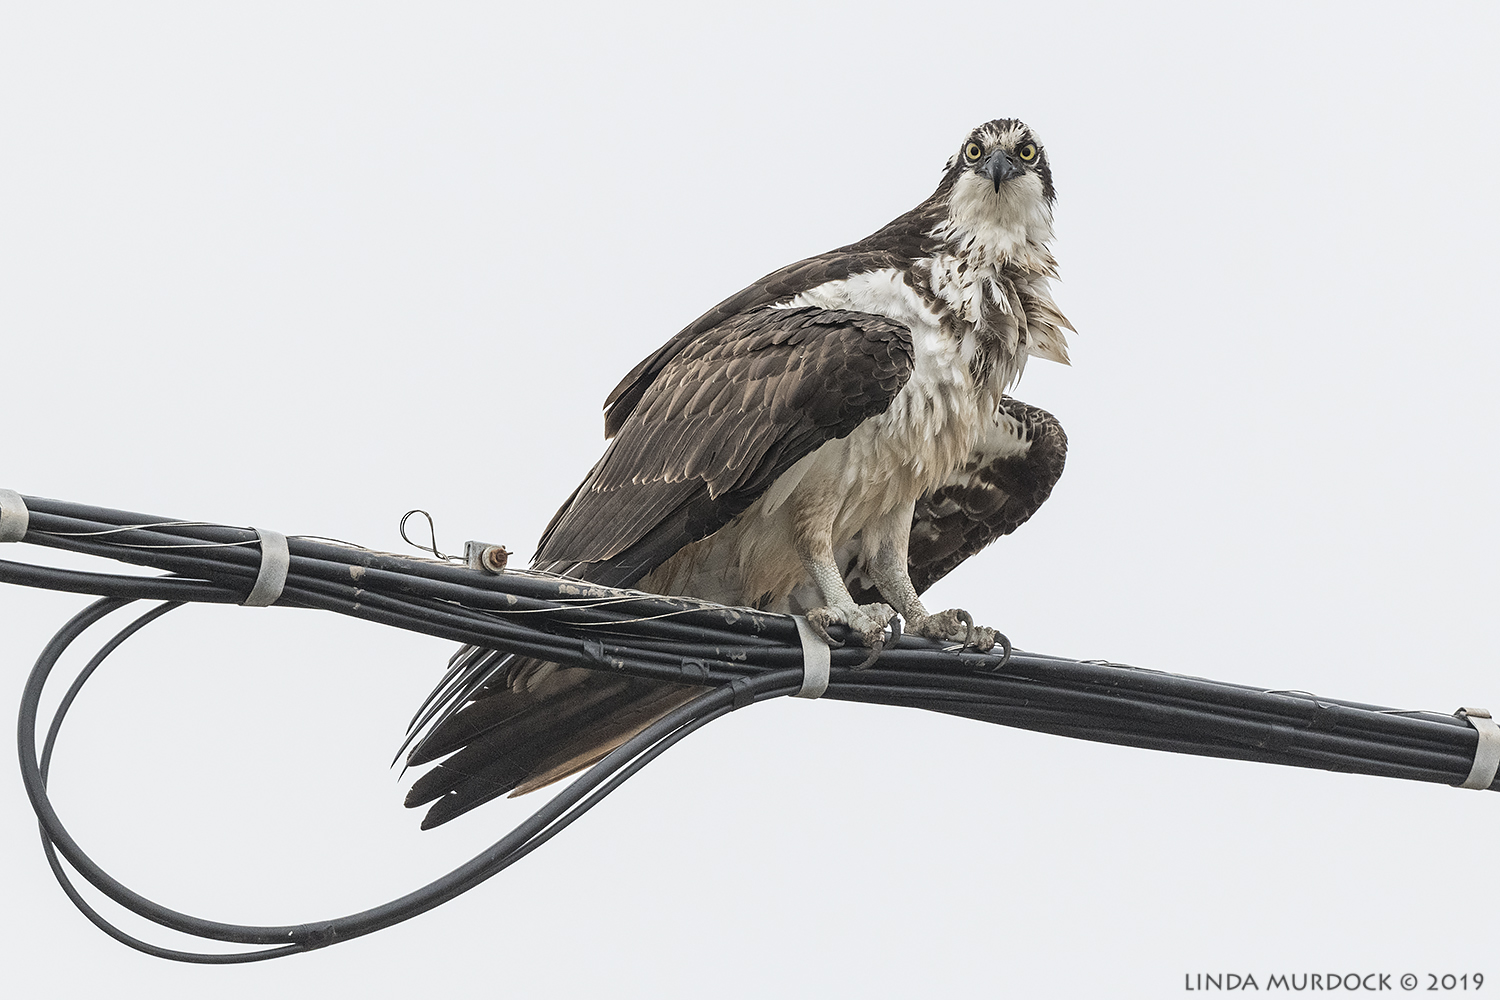 Relaxed Osprey  Nikon D850 with Nikkor 500 f/5.6 PF VR ~ 1/2000 sec f/6.3 ISO 1600; hand-held